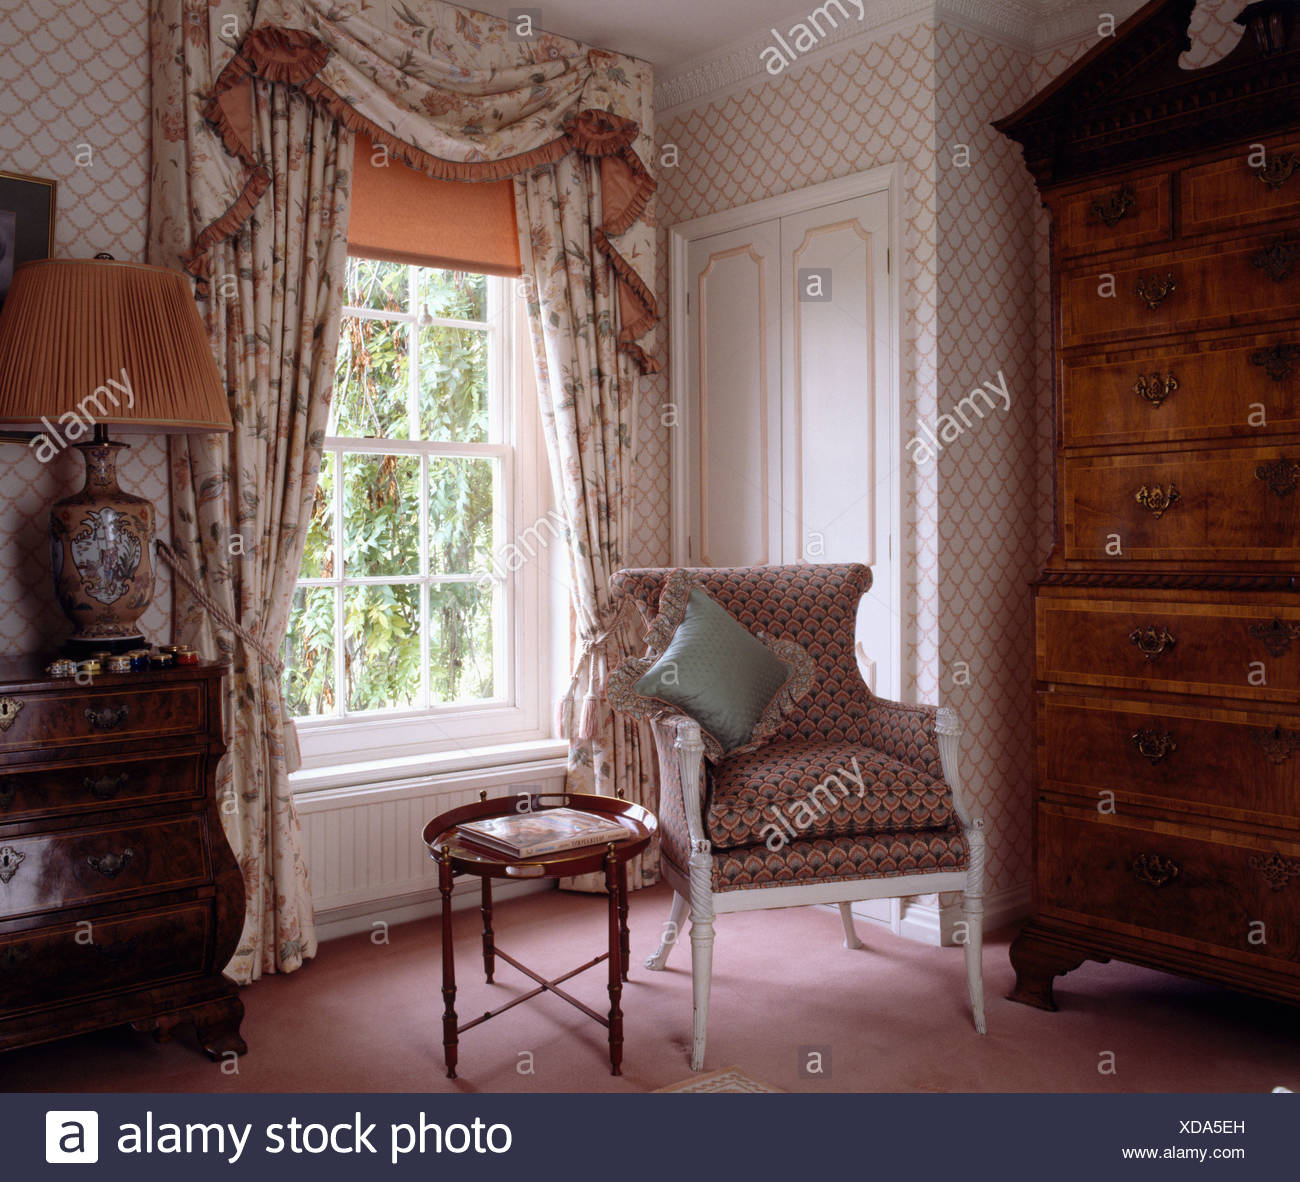 Orange blind and floral swagged curtains in bedroom with ...